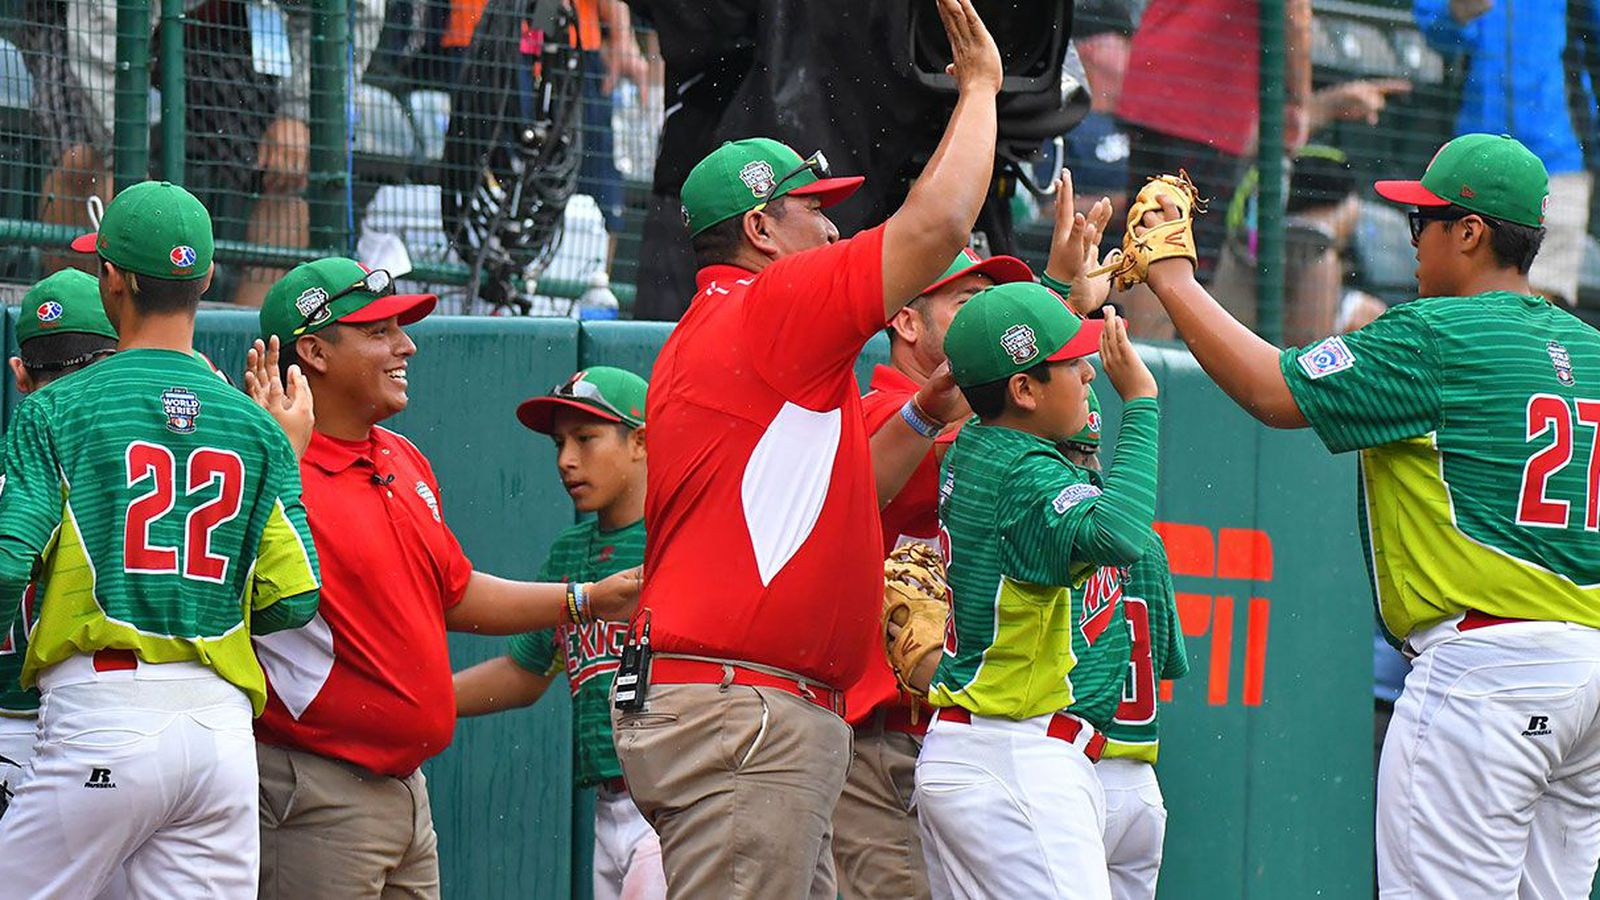 Little League World Series scores 2017: Mexico moves on with a resounding win over Latin America